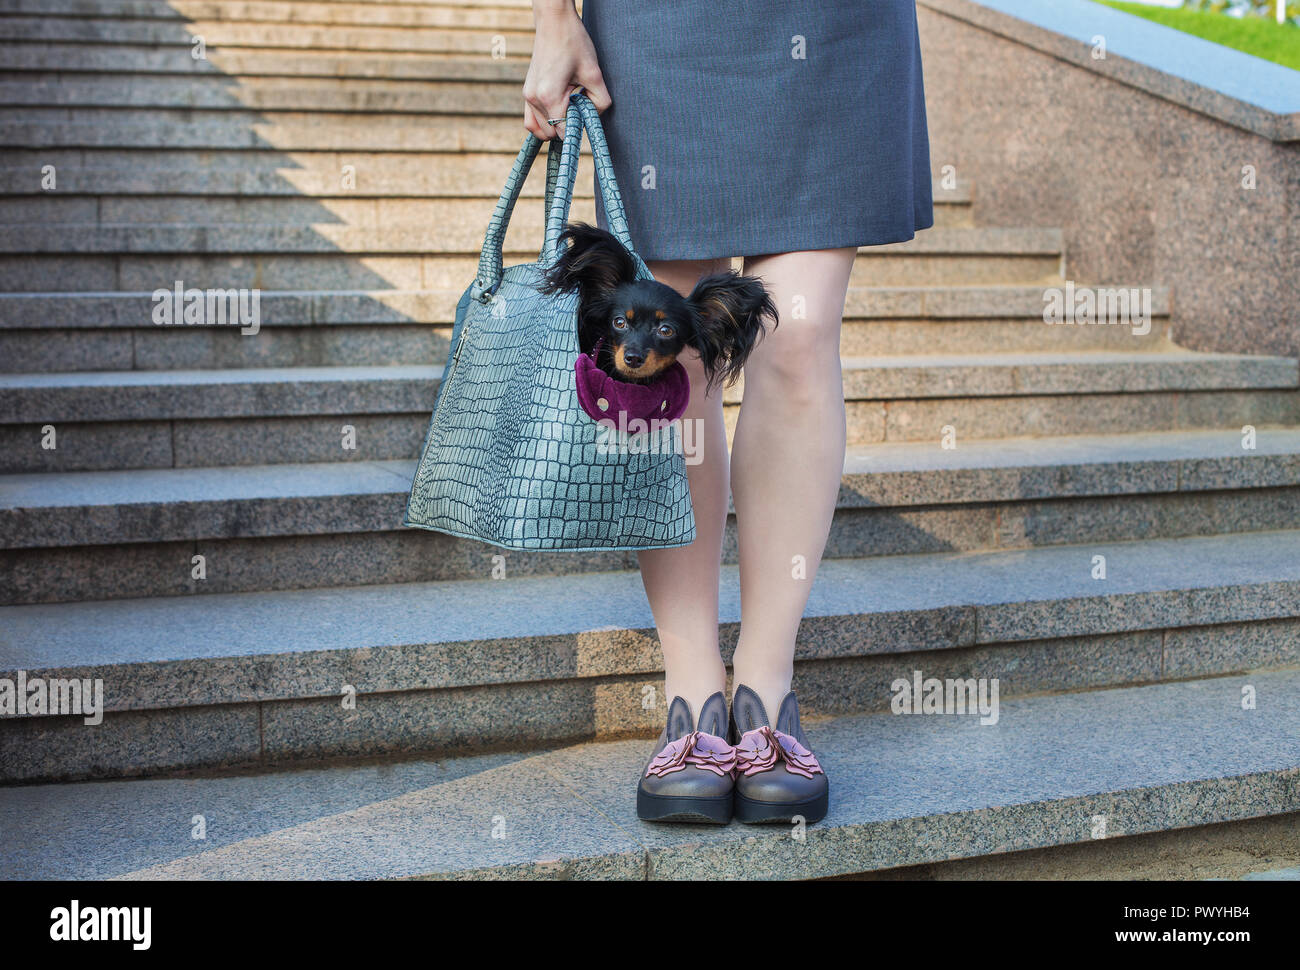 Black Russian Terrier sitting in a gray dog carrying bag that holding light-skinned woman - Stock Image